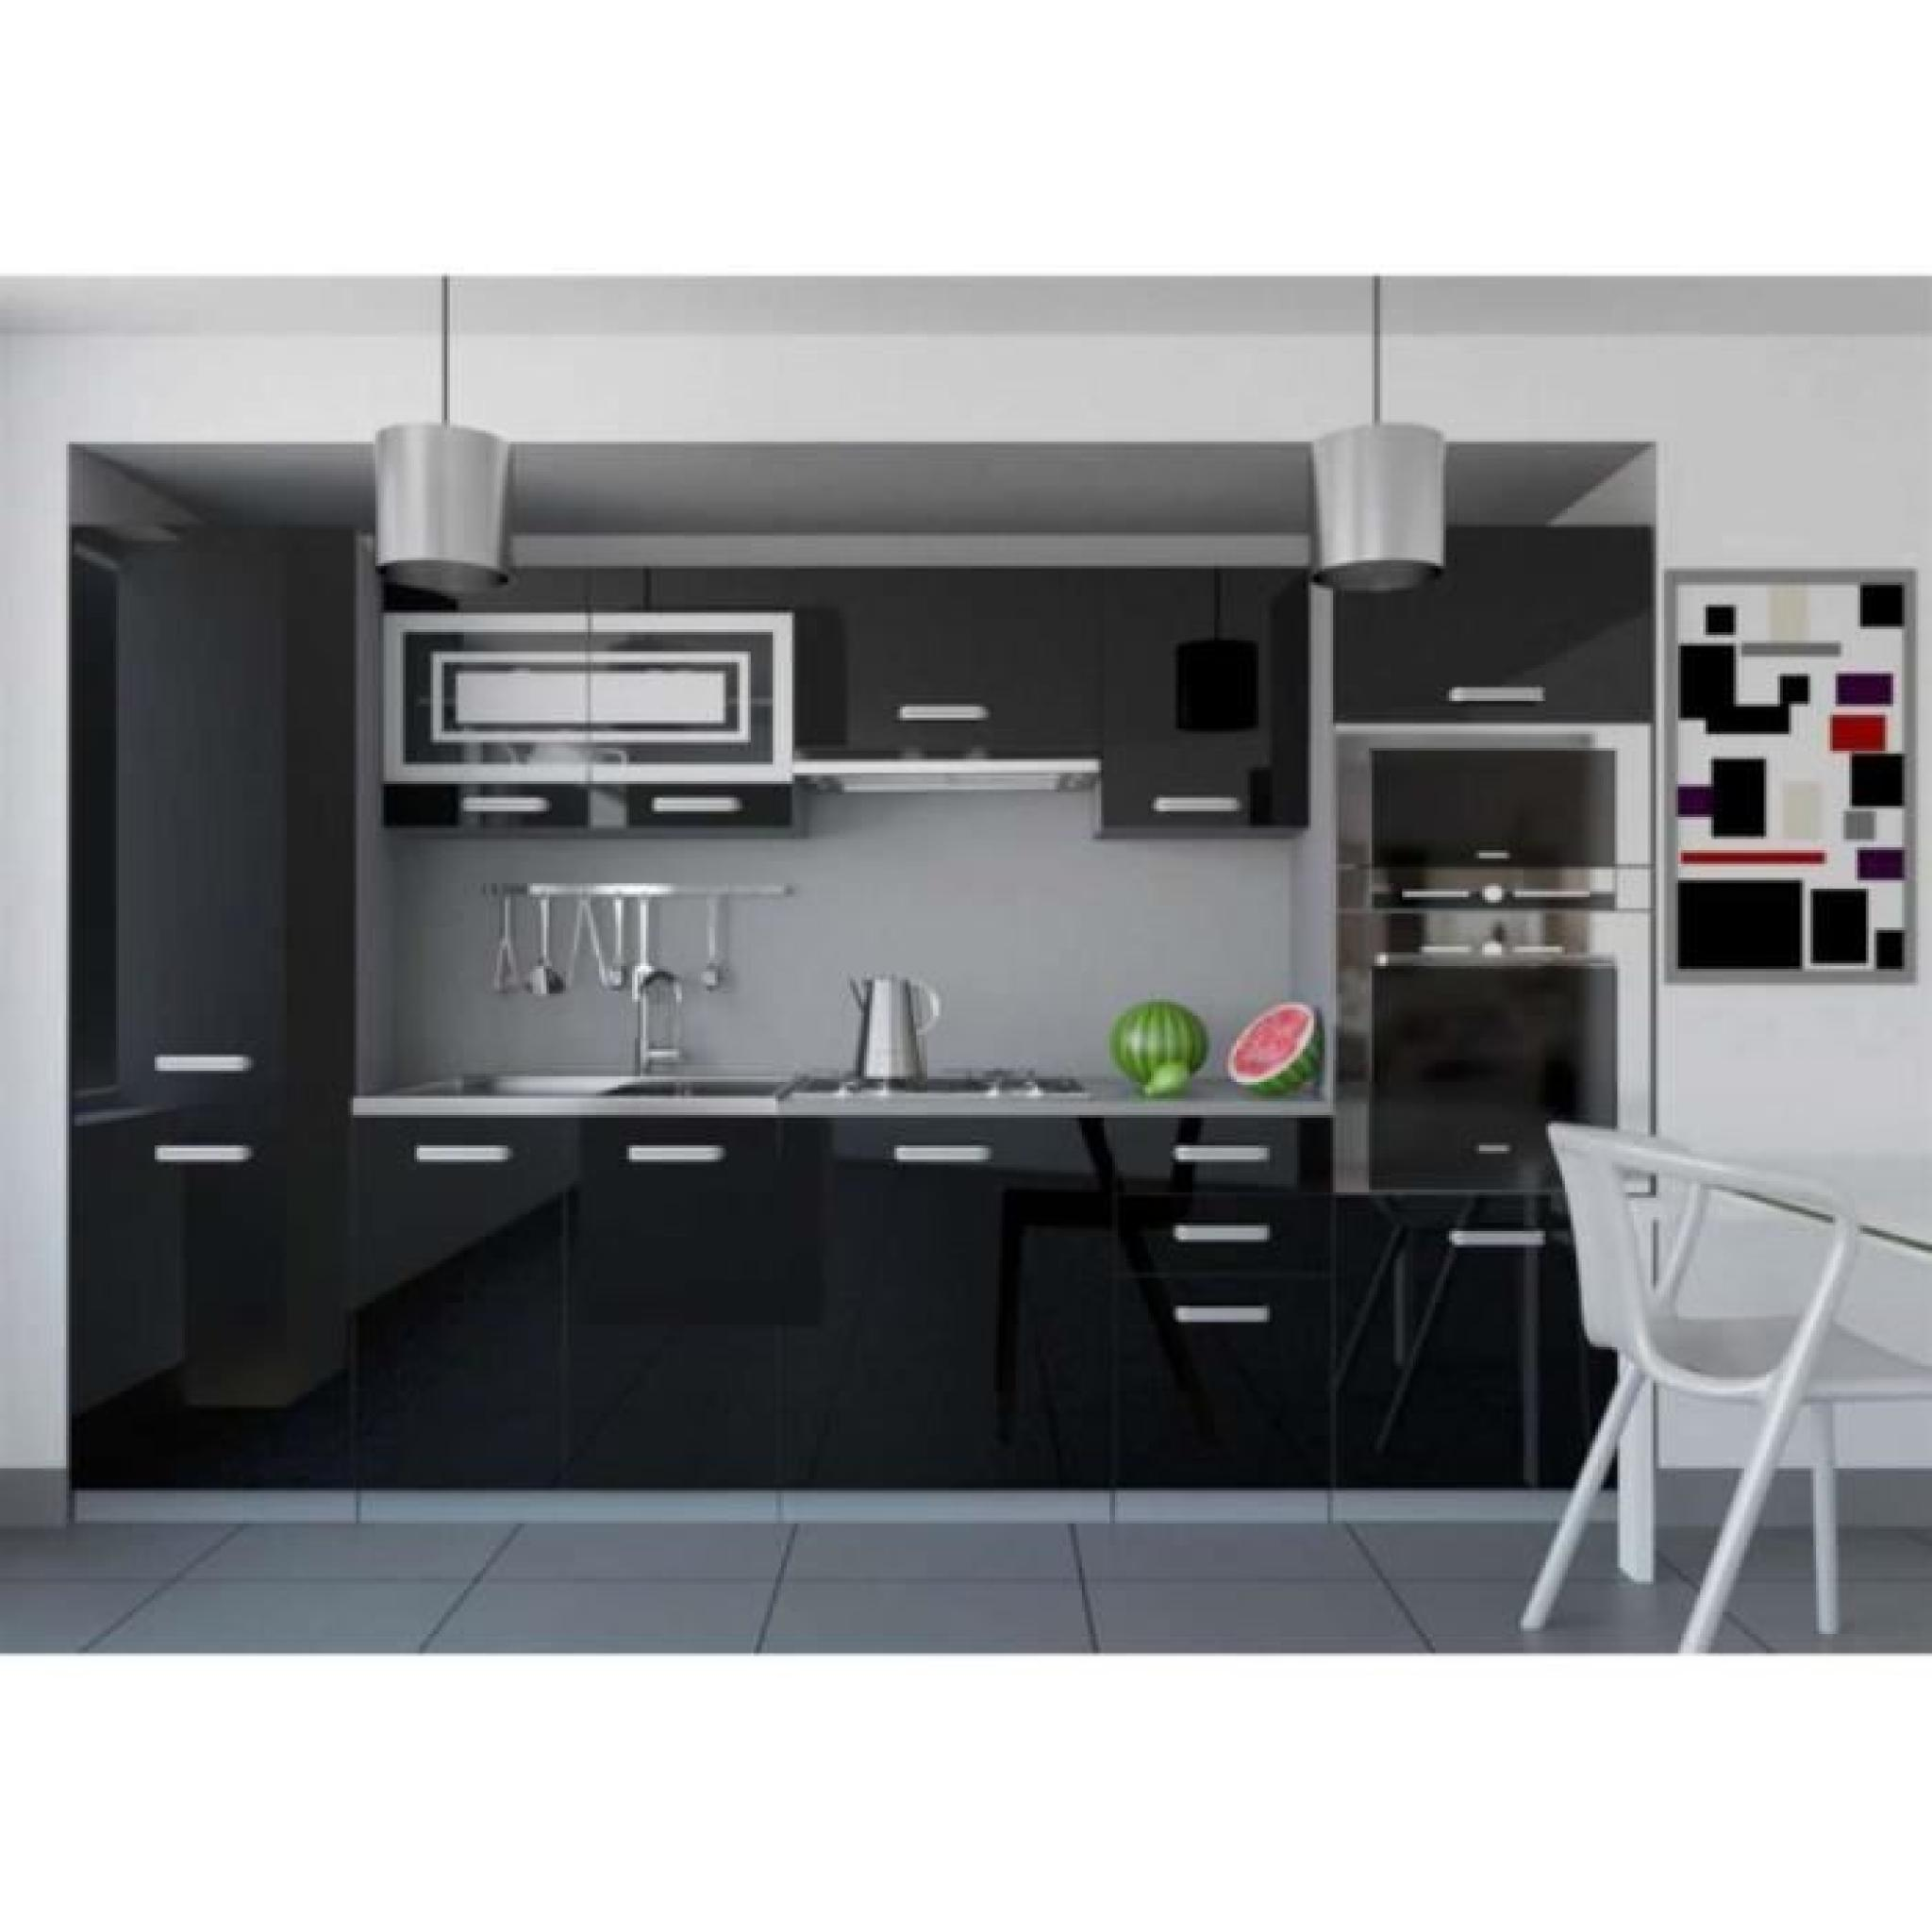 justhome infinity cuisine quip e compl te 300 cm couleur noir blanc laqu haute brillance. Black Bedroom Furniture Sets. Home Design Ideas